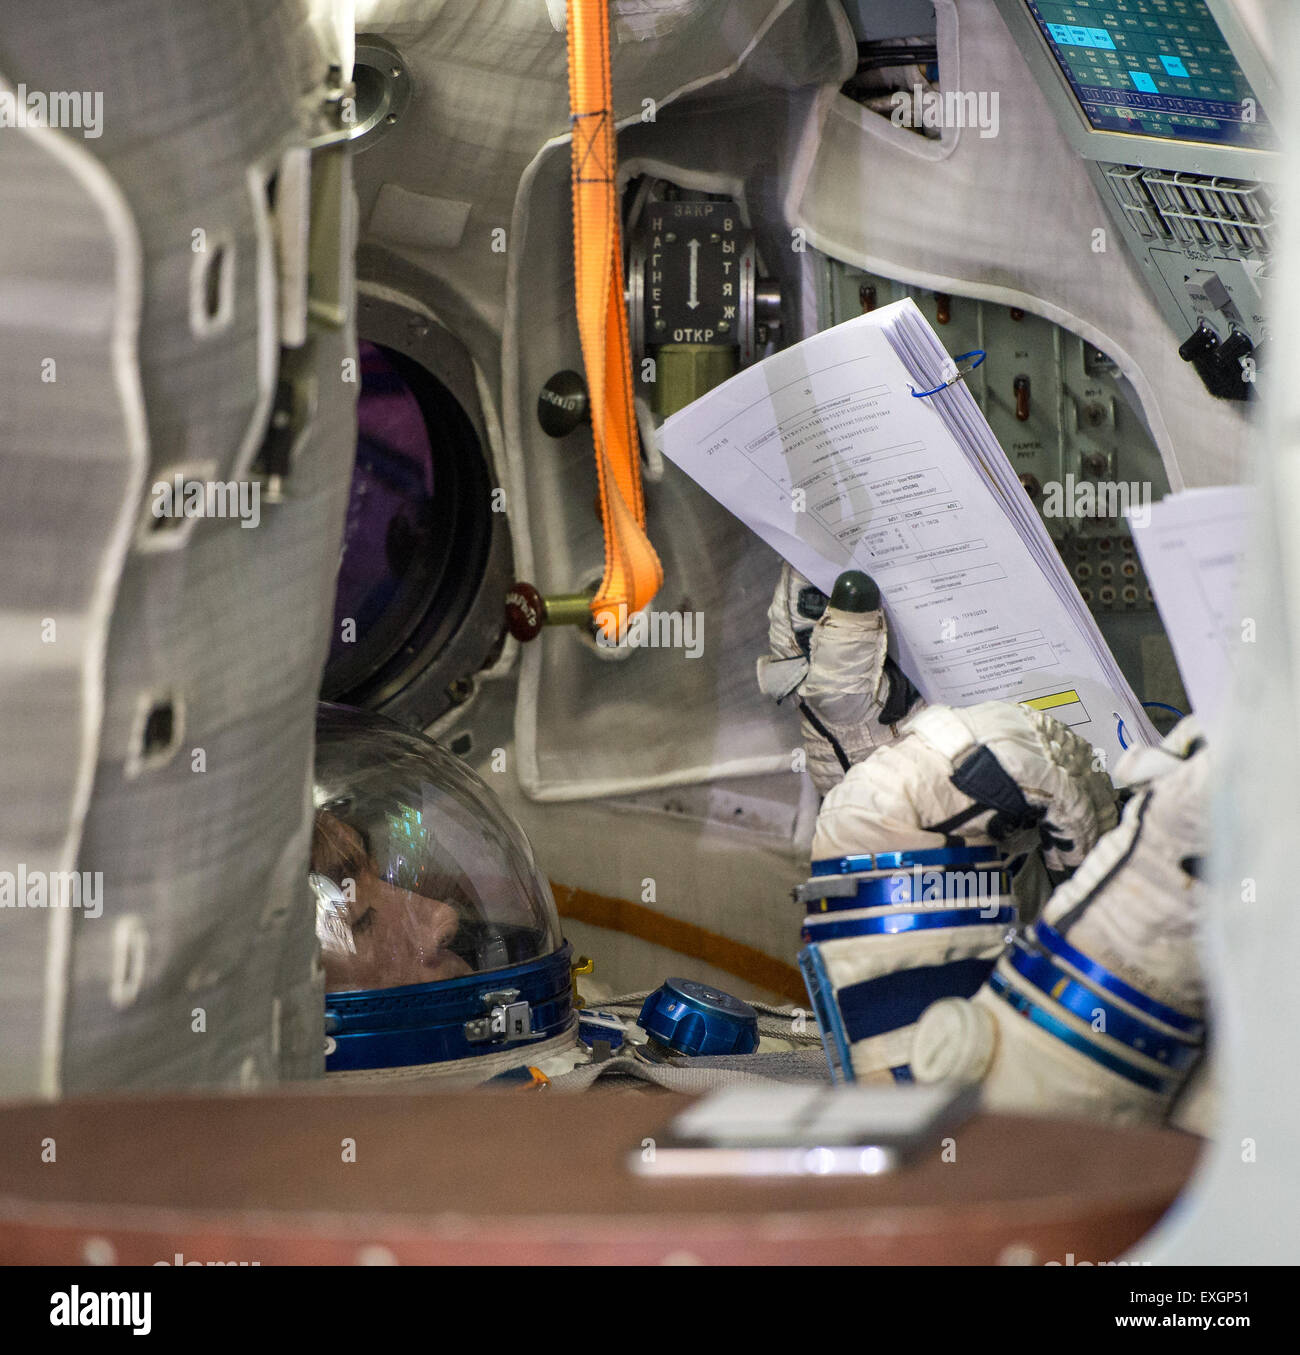 Japan Aerospace Exploration Agency astronaut Kimiya Yui participates in the second day of qualification exams with - Stock Image